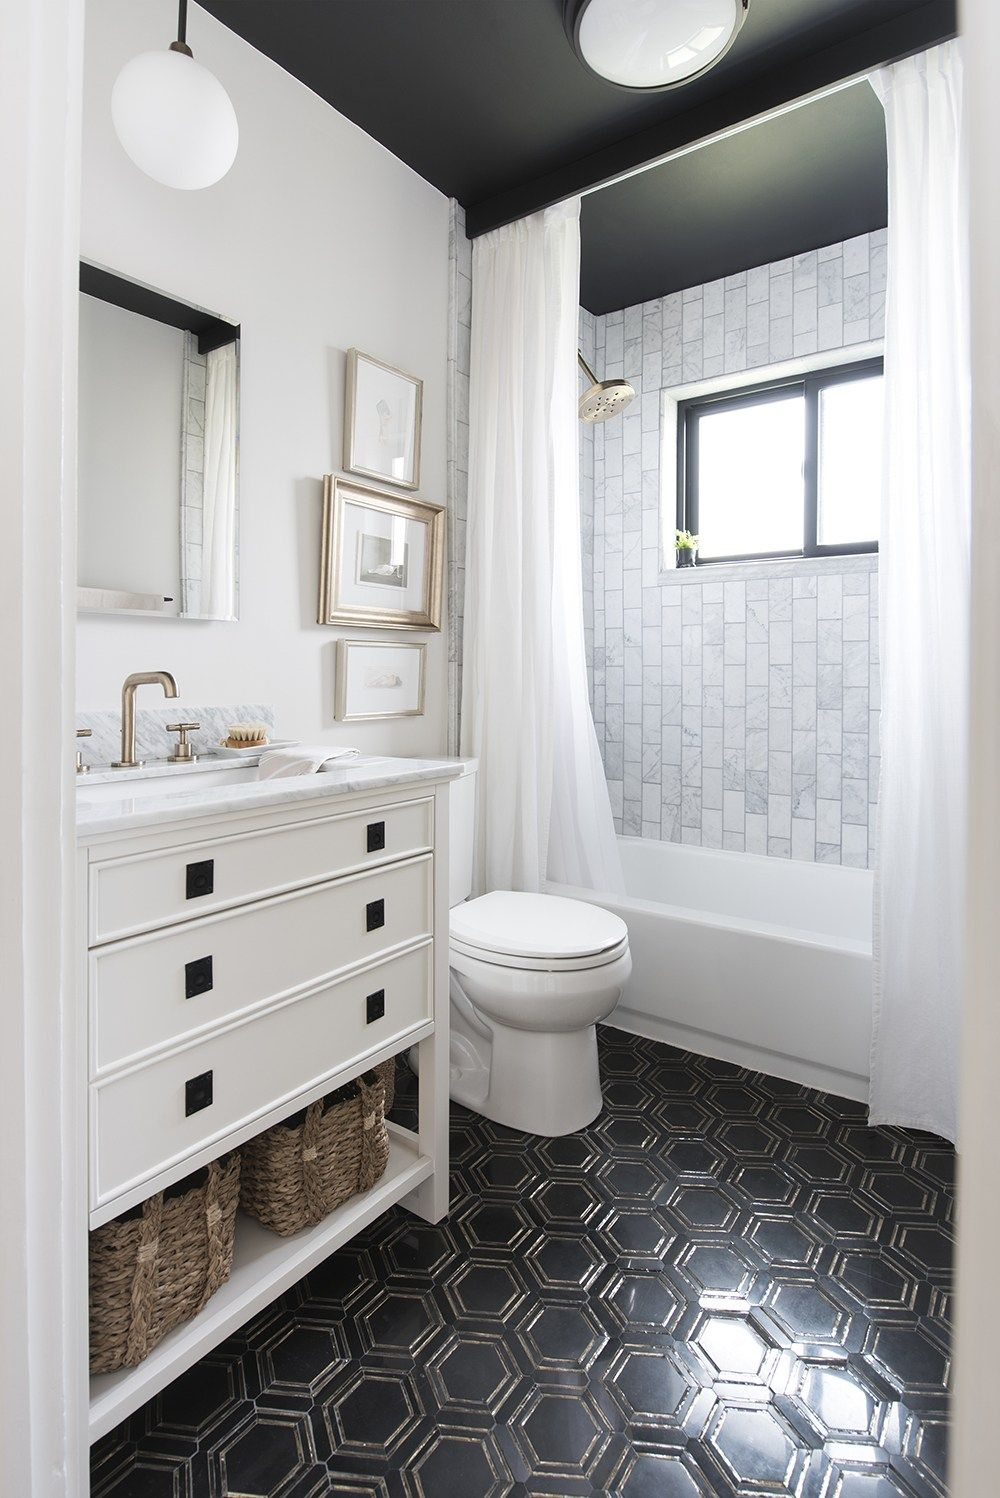 No makeup home tour roomfortuesday bathroom renovations makeovers white also realistic pinterest rh